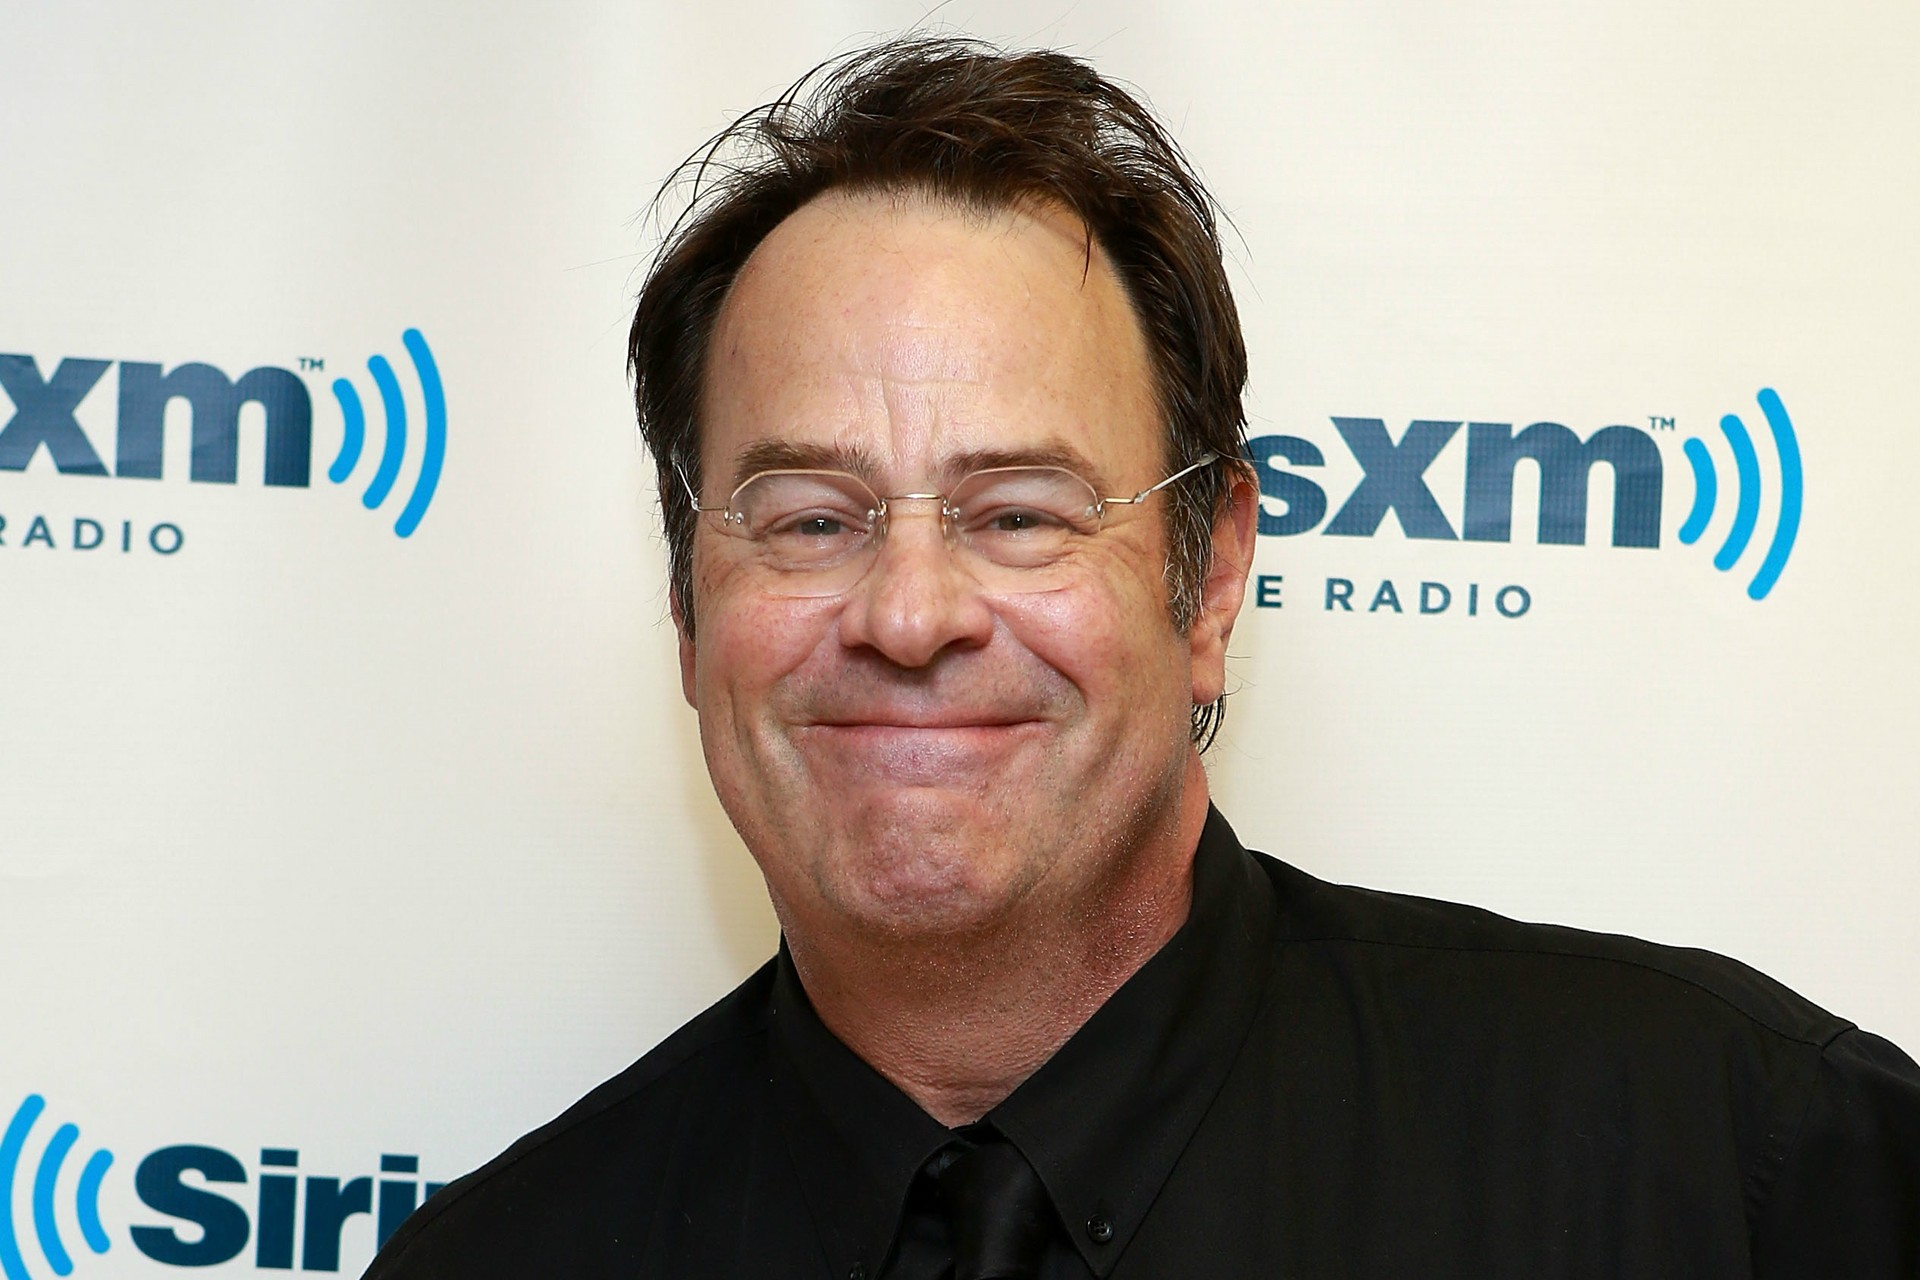 O ator Dan Aykroyd, de 61 anos, decidiu virar delegado no estado norte-americano do Mississipi. (Foto: Getty Images)